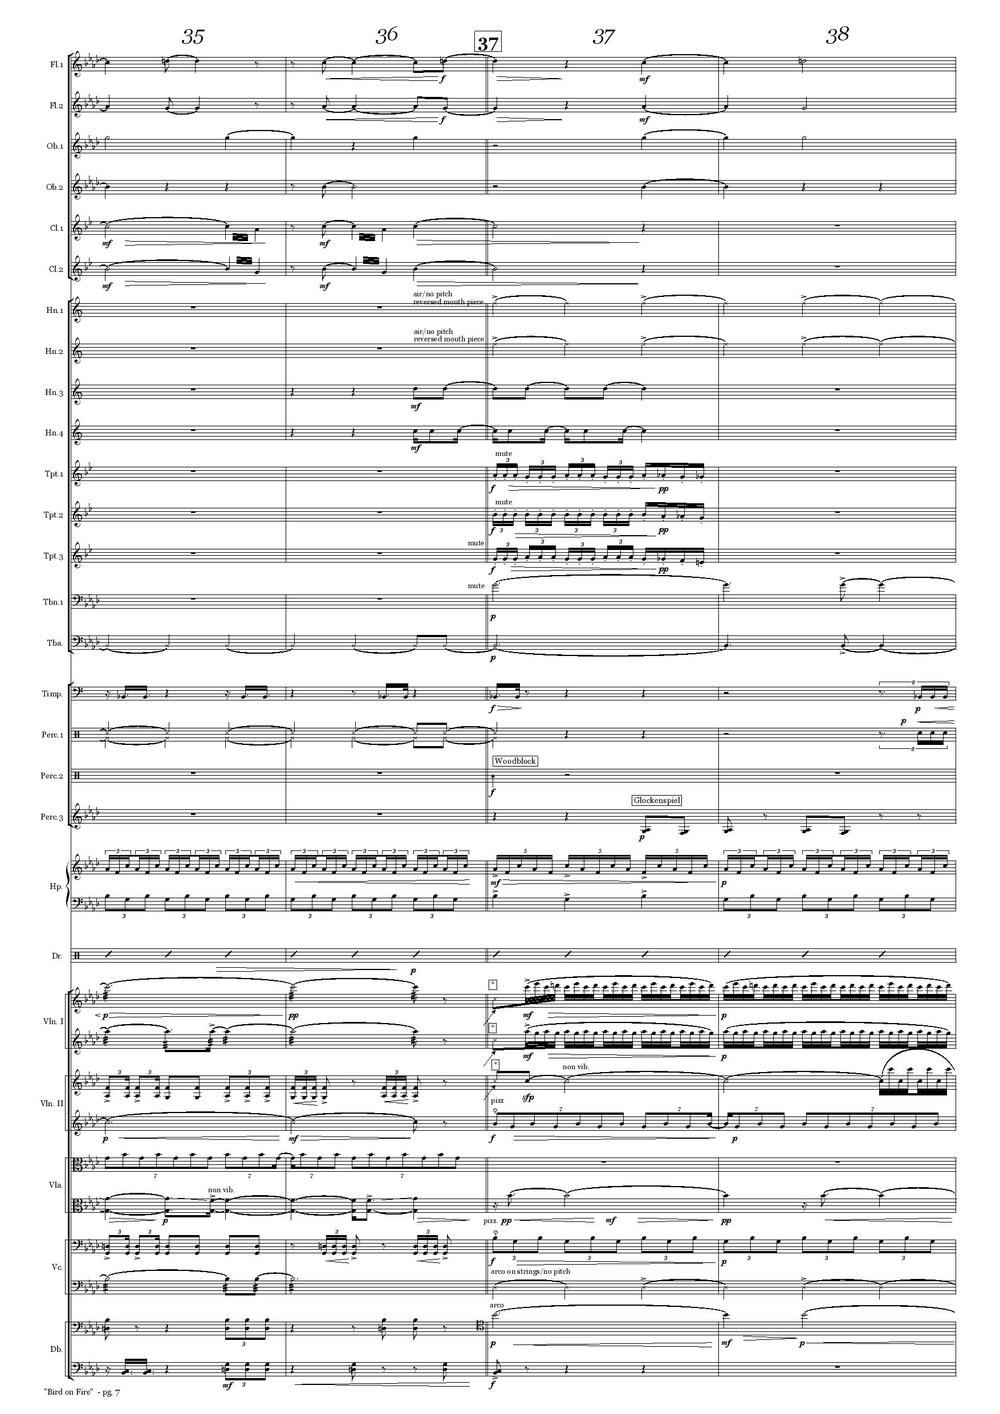 Bird on Fire - score-page-010.jpg